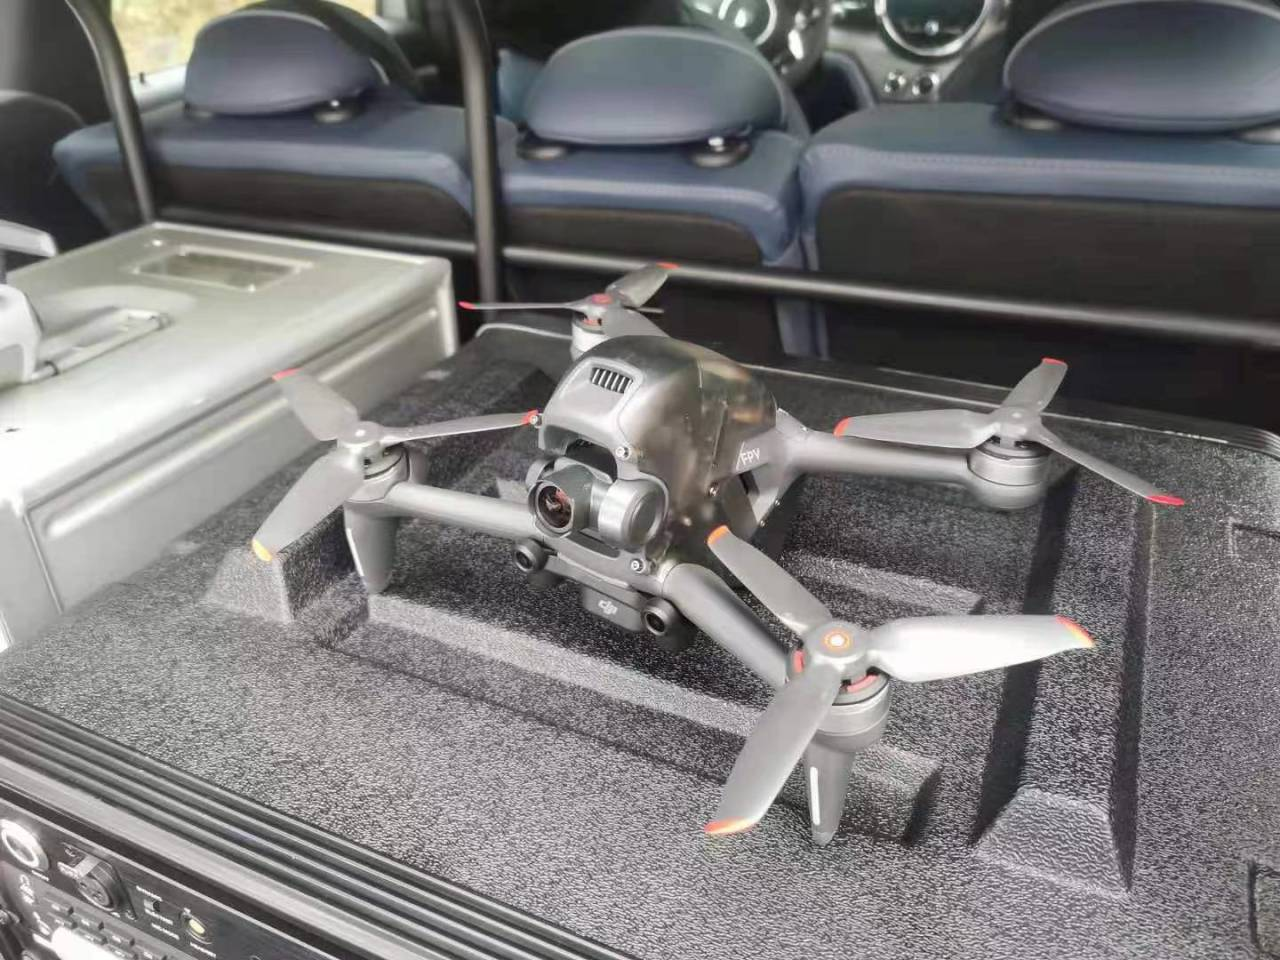 New photo leaked of DJI's upcoming FPV drone